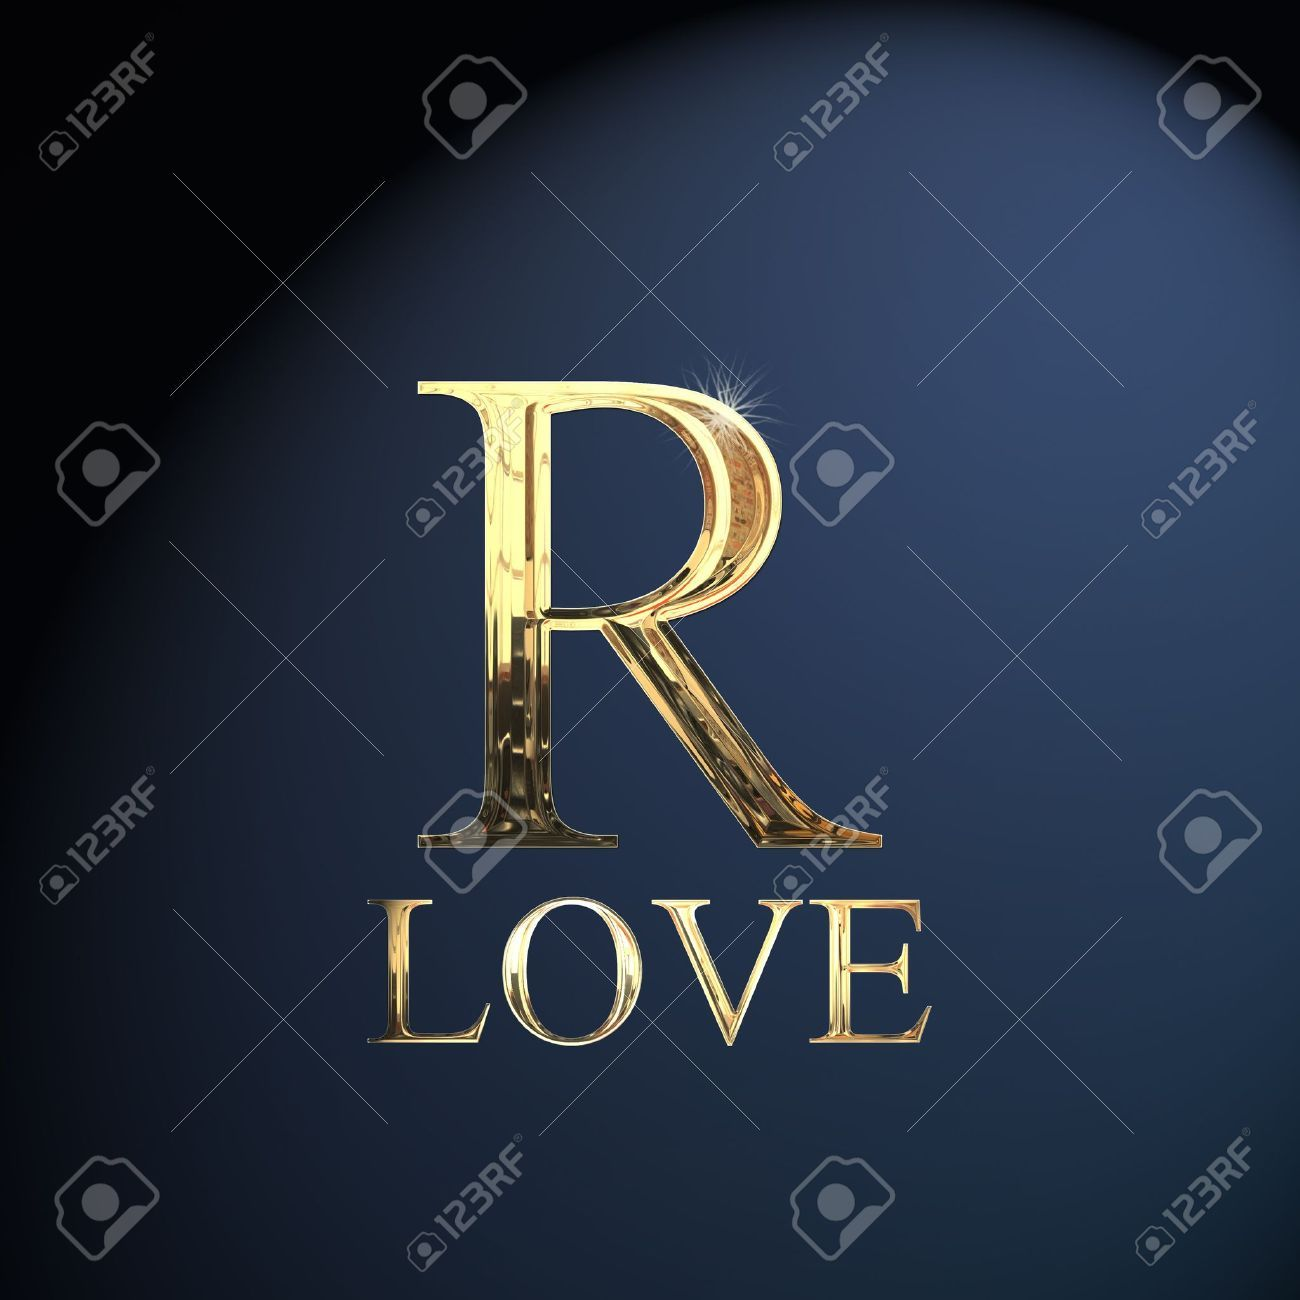 rs love wallpaper free download | epic car wallpapers | pinterest